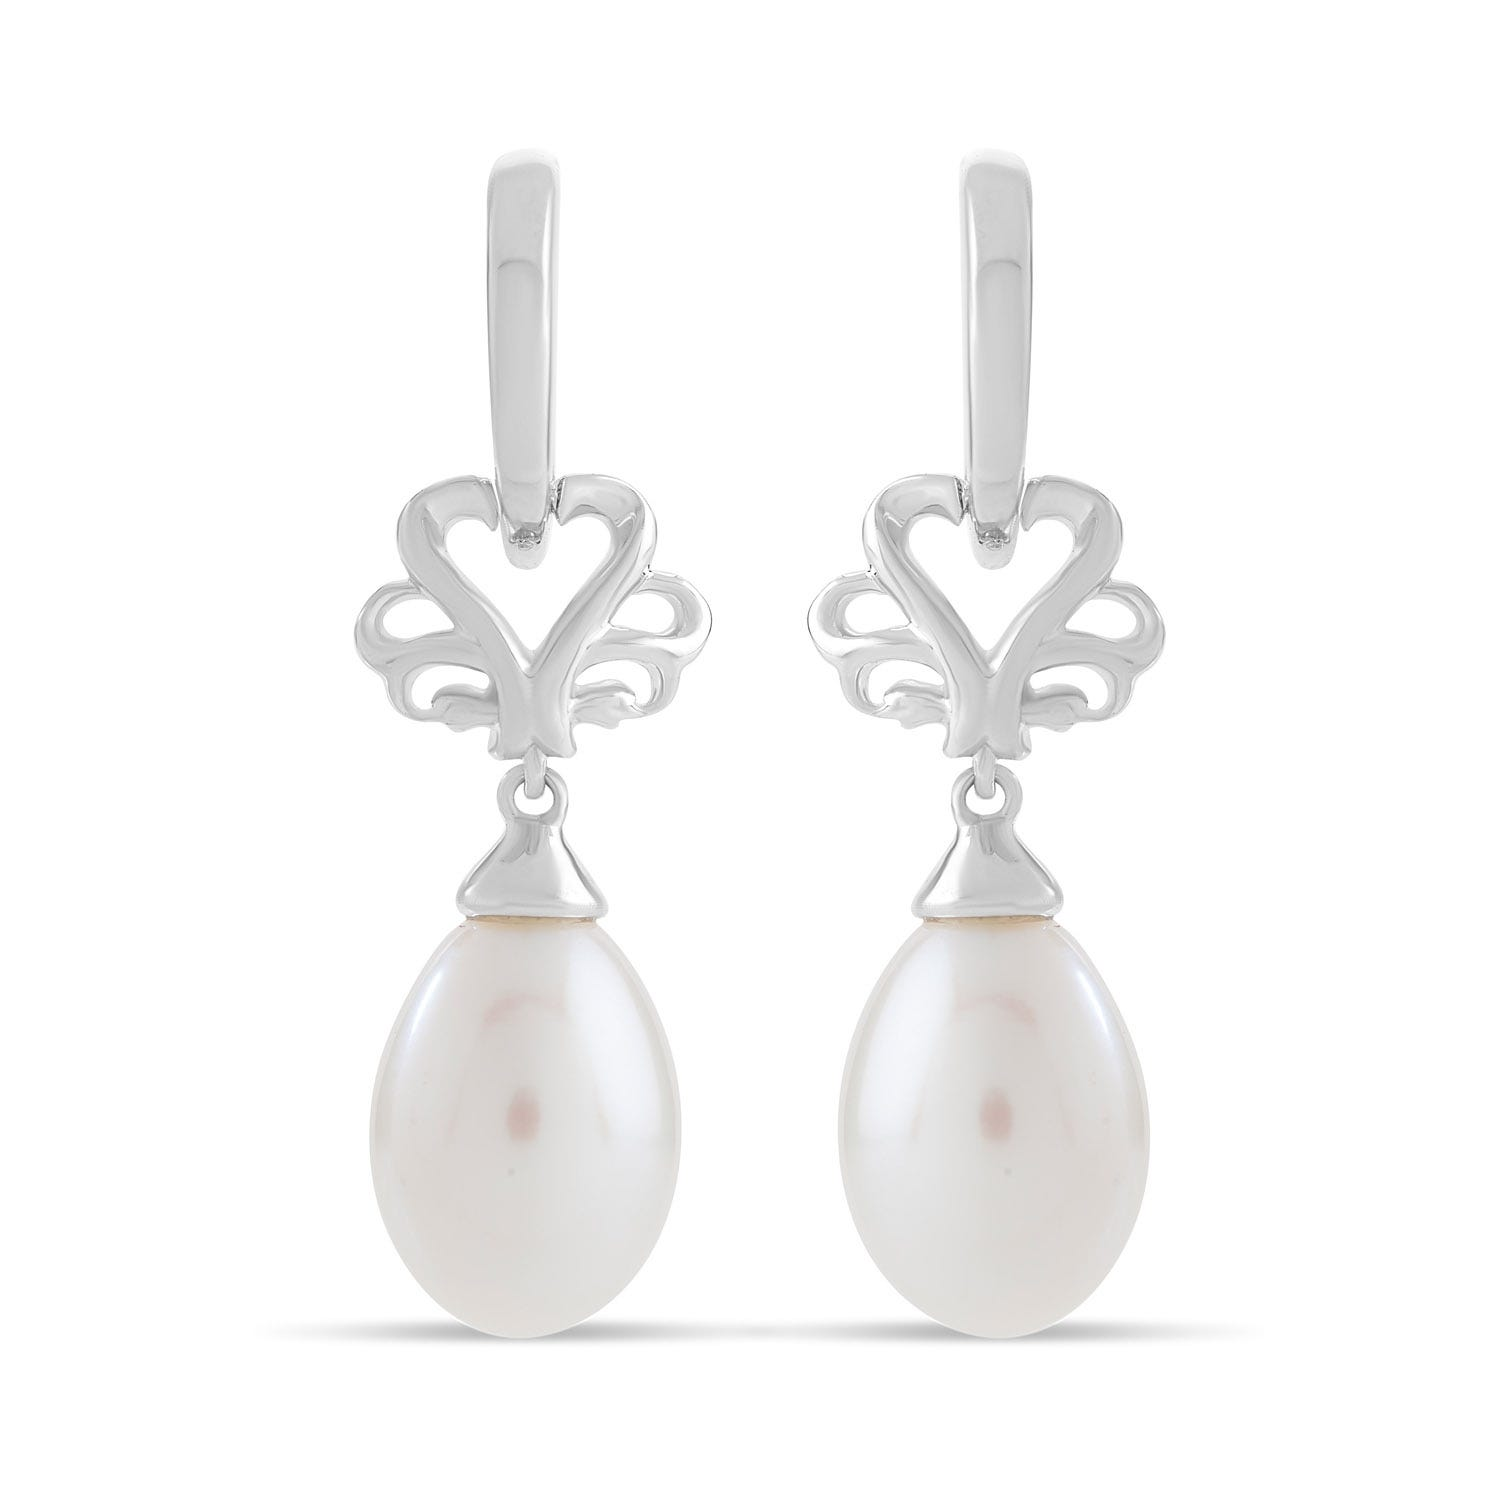 Kathy de Stafford Sterling Silver and Fresh Water Pearl Earrings